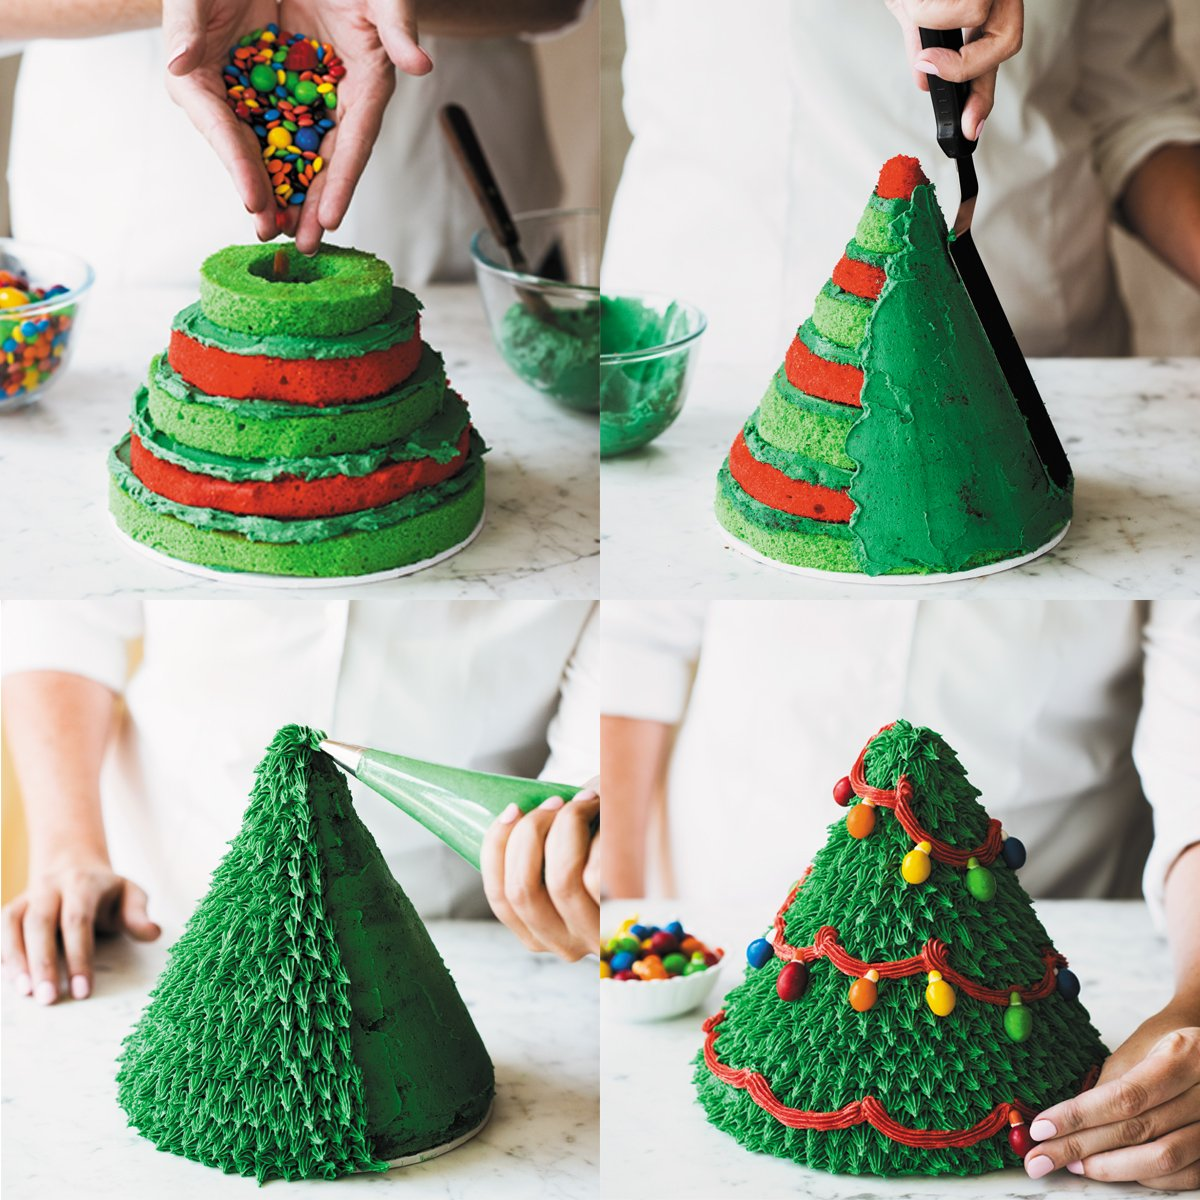 Get in the Christmas spirit with these two festive recipes from @CupcakeAddictAU -->  https:// wordery.com/blog/christmas -tree-surprise-cake-recipe-584eb5f0e3407?utm_source=twitter&utm_campaign=christmas-2016&utm_medium=social  …  #sweetcelebrationscookbook <br>http://pic.twitter.com/8xr3njHG0t